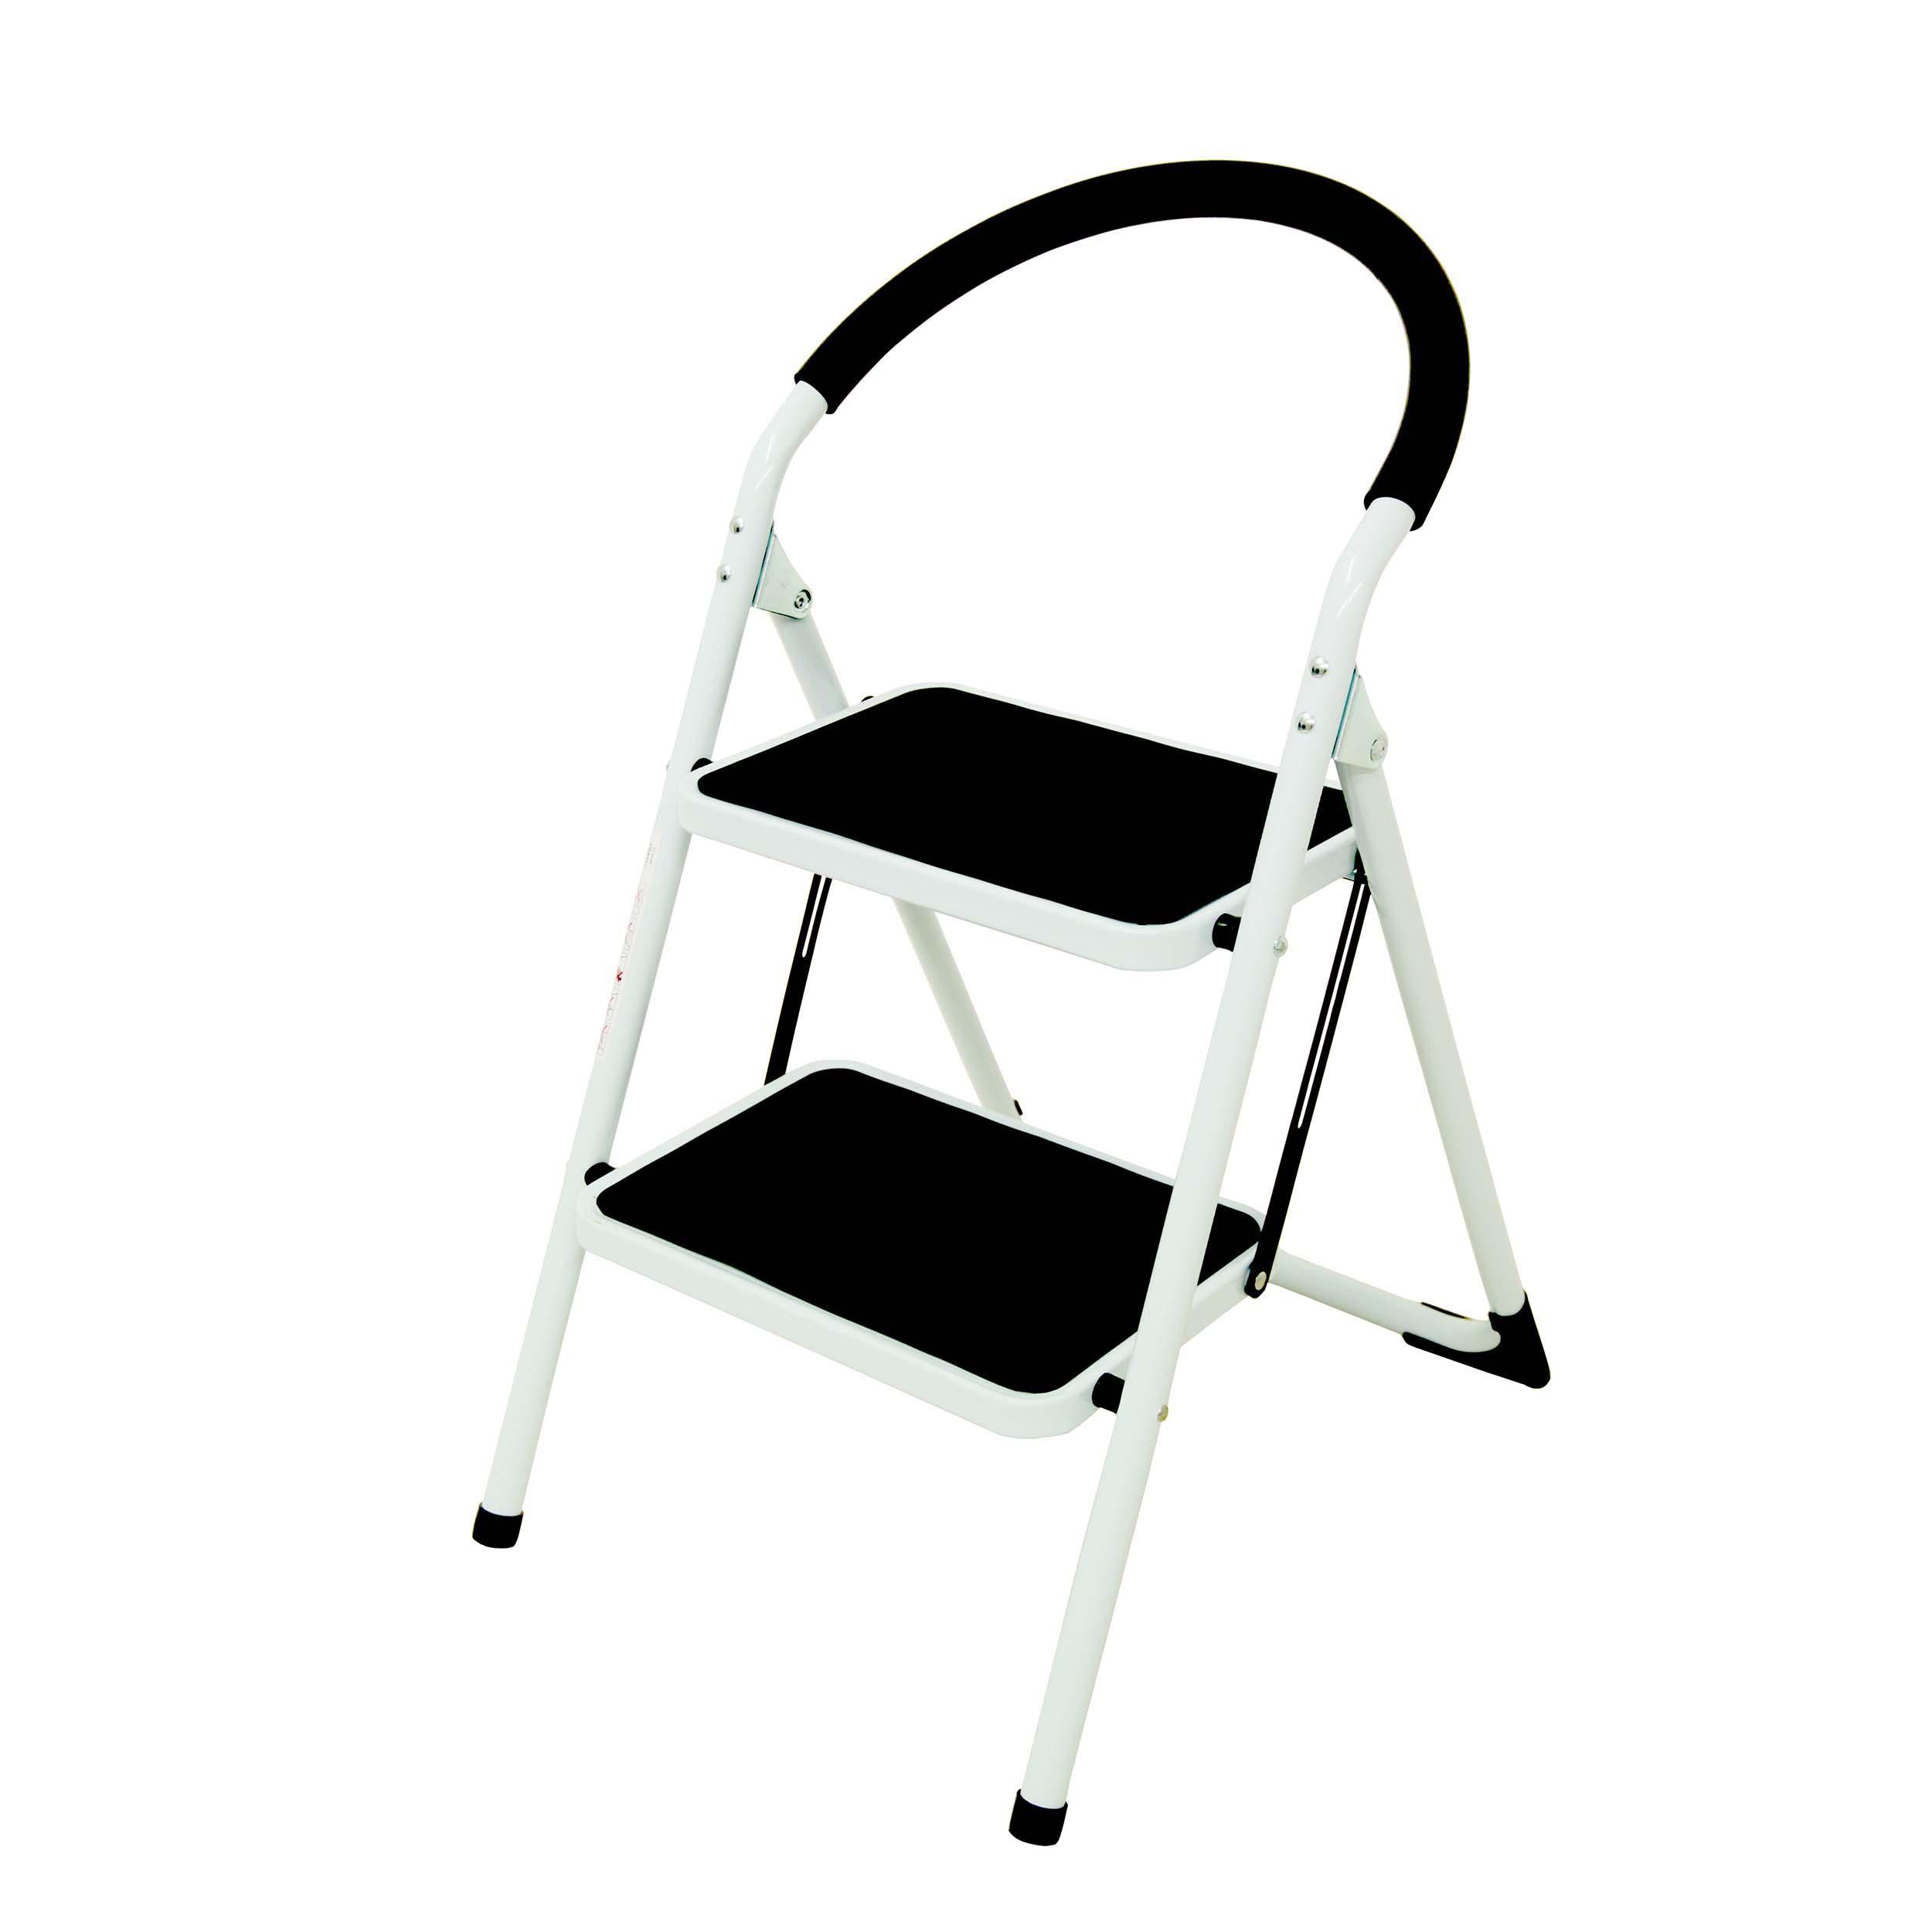 Cleaning Chemicals Folding Step Ladder 2 Tread Capacity 150kg White Frame